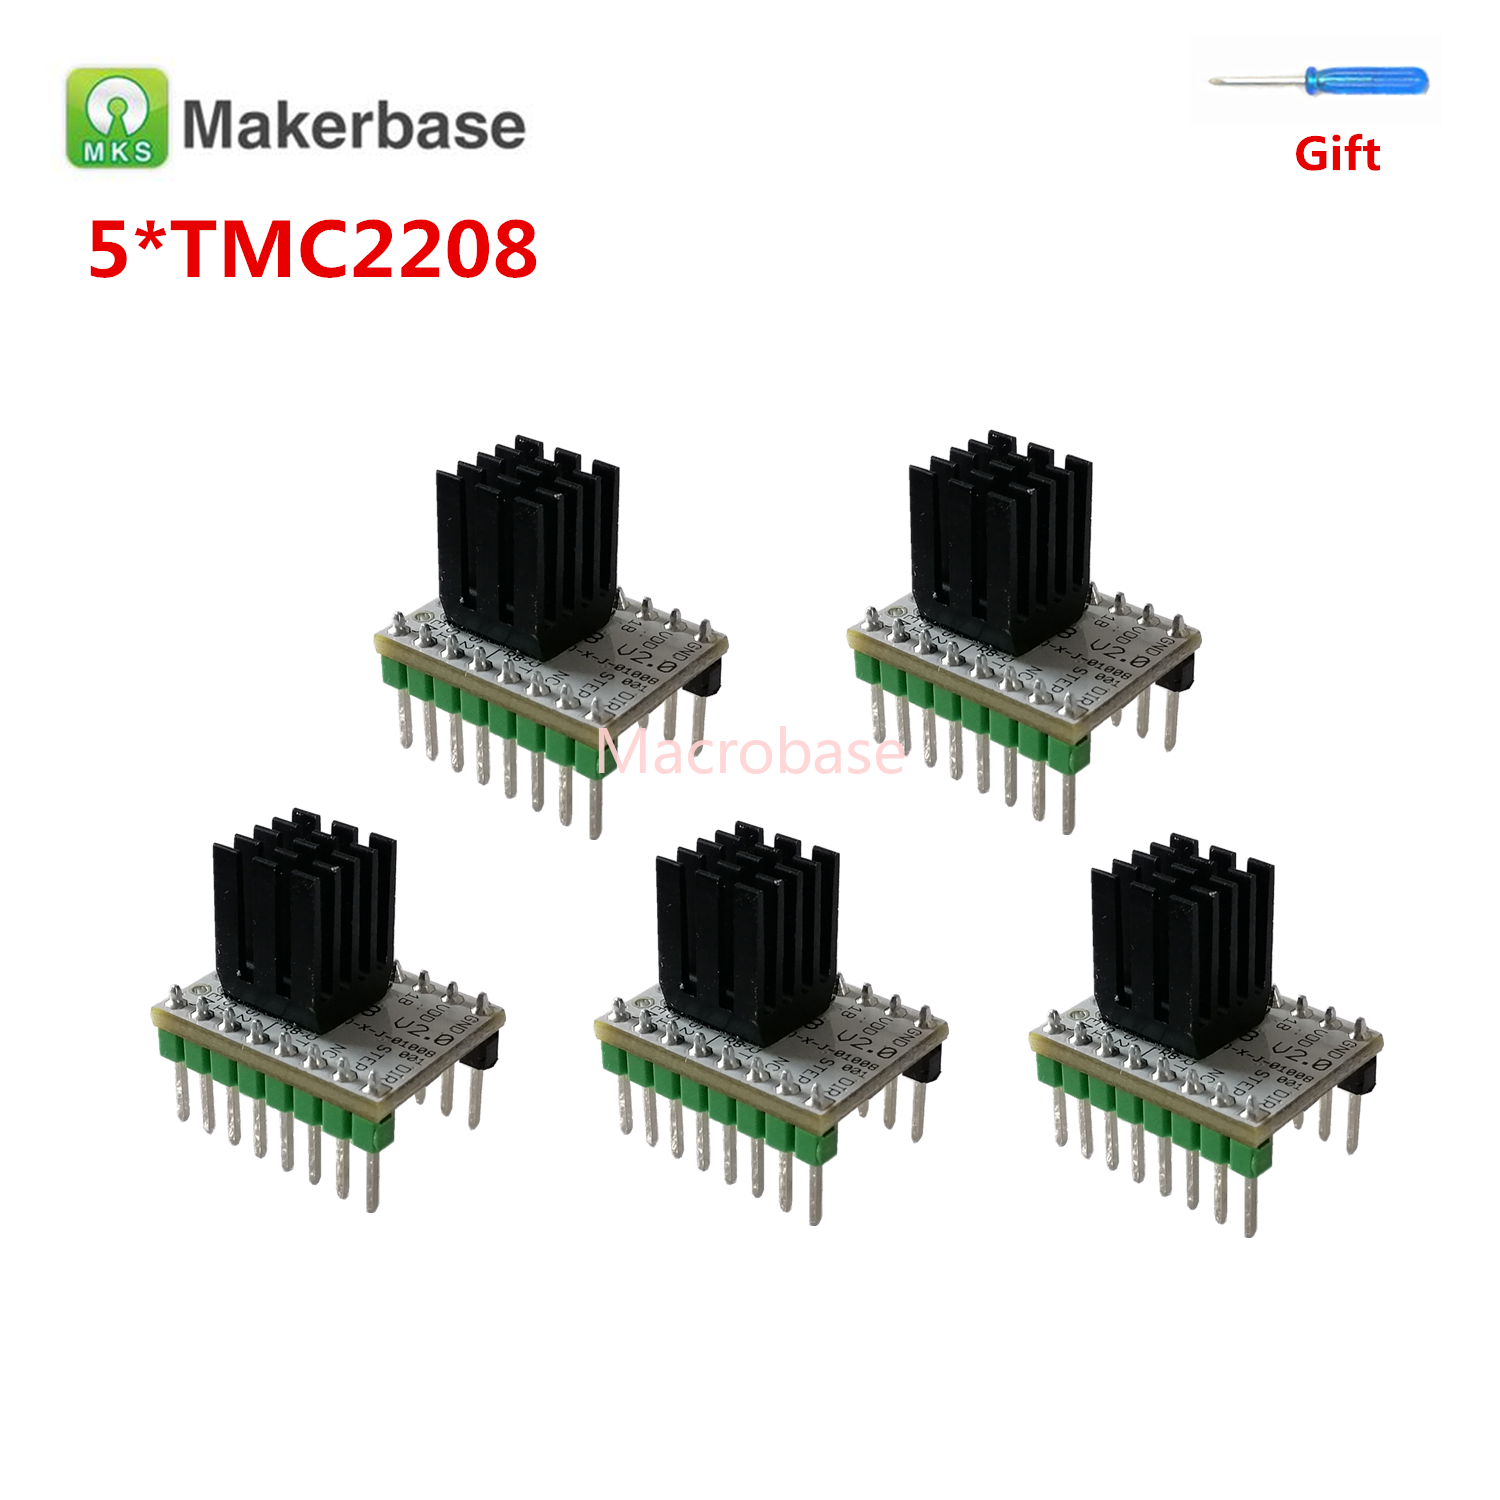 Step Stick 5pcs MKS TMC2208 V2.0 3d Printer Stepper Motor Driver Controller Stepmotor Driver TMC 2208 Engine 3d Printer Stuff